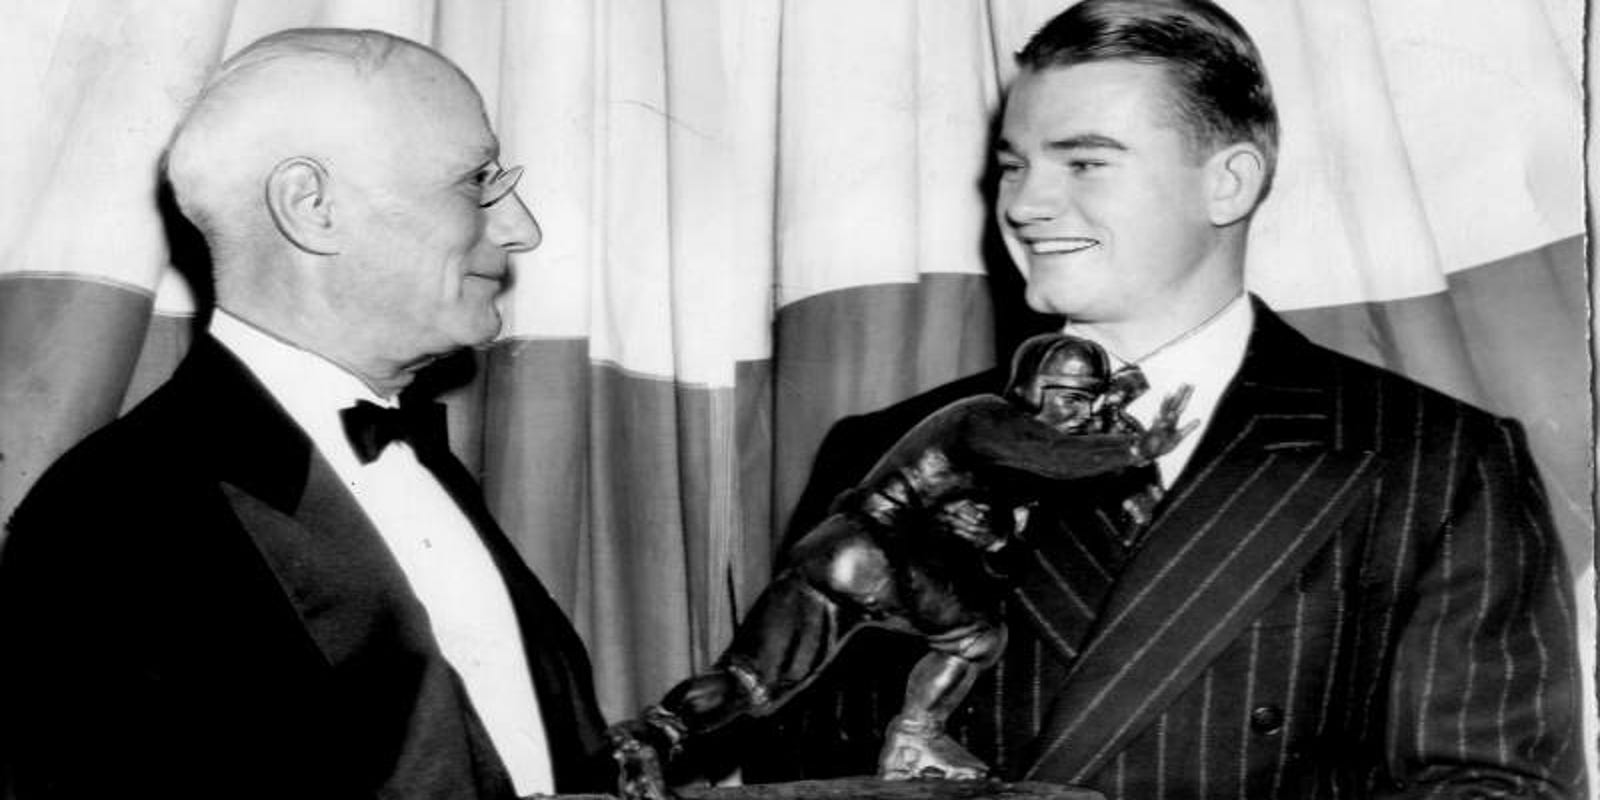 Listen: Nile Kinnick's legendary 1939 Heisman Trophy speech